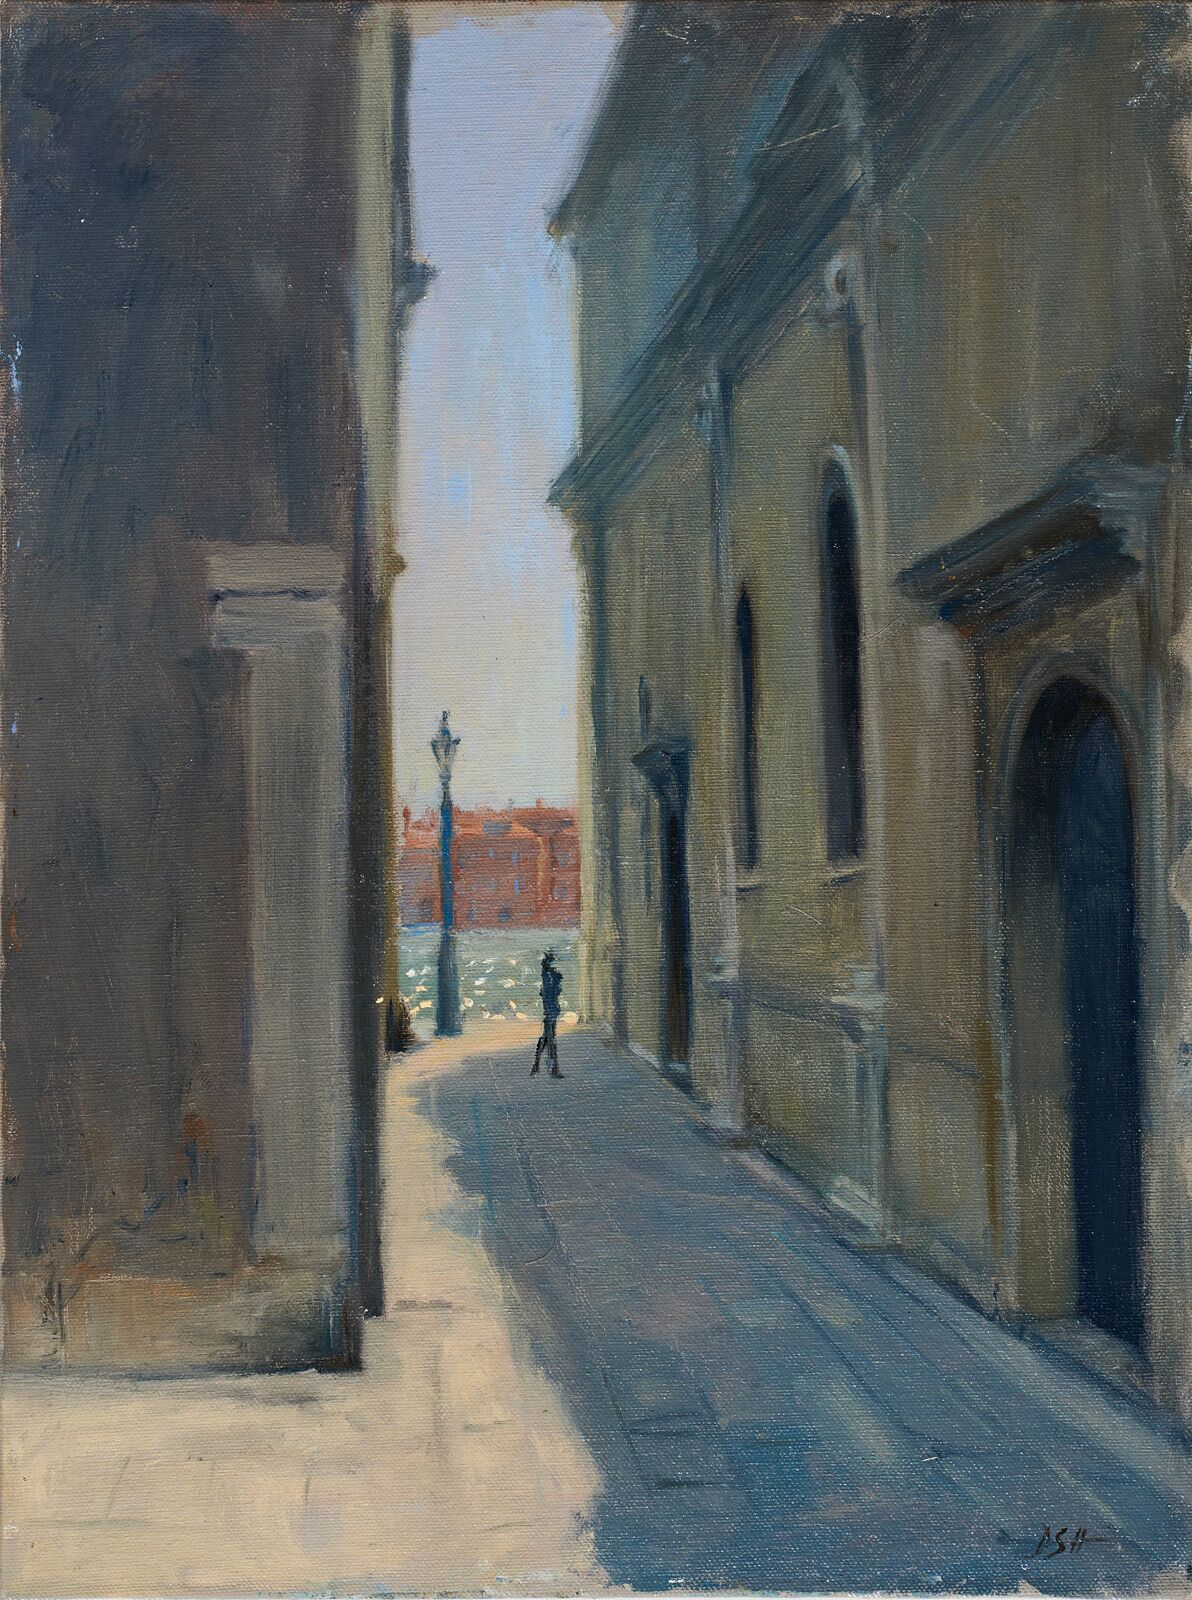 Afternoon Light by Santo Spirito